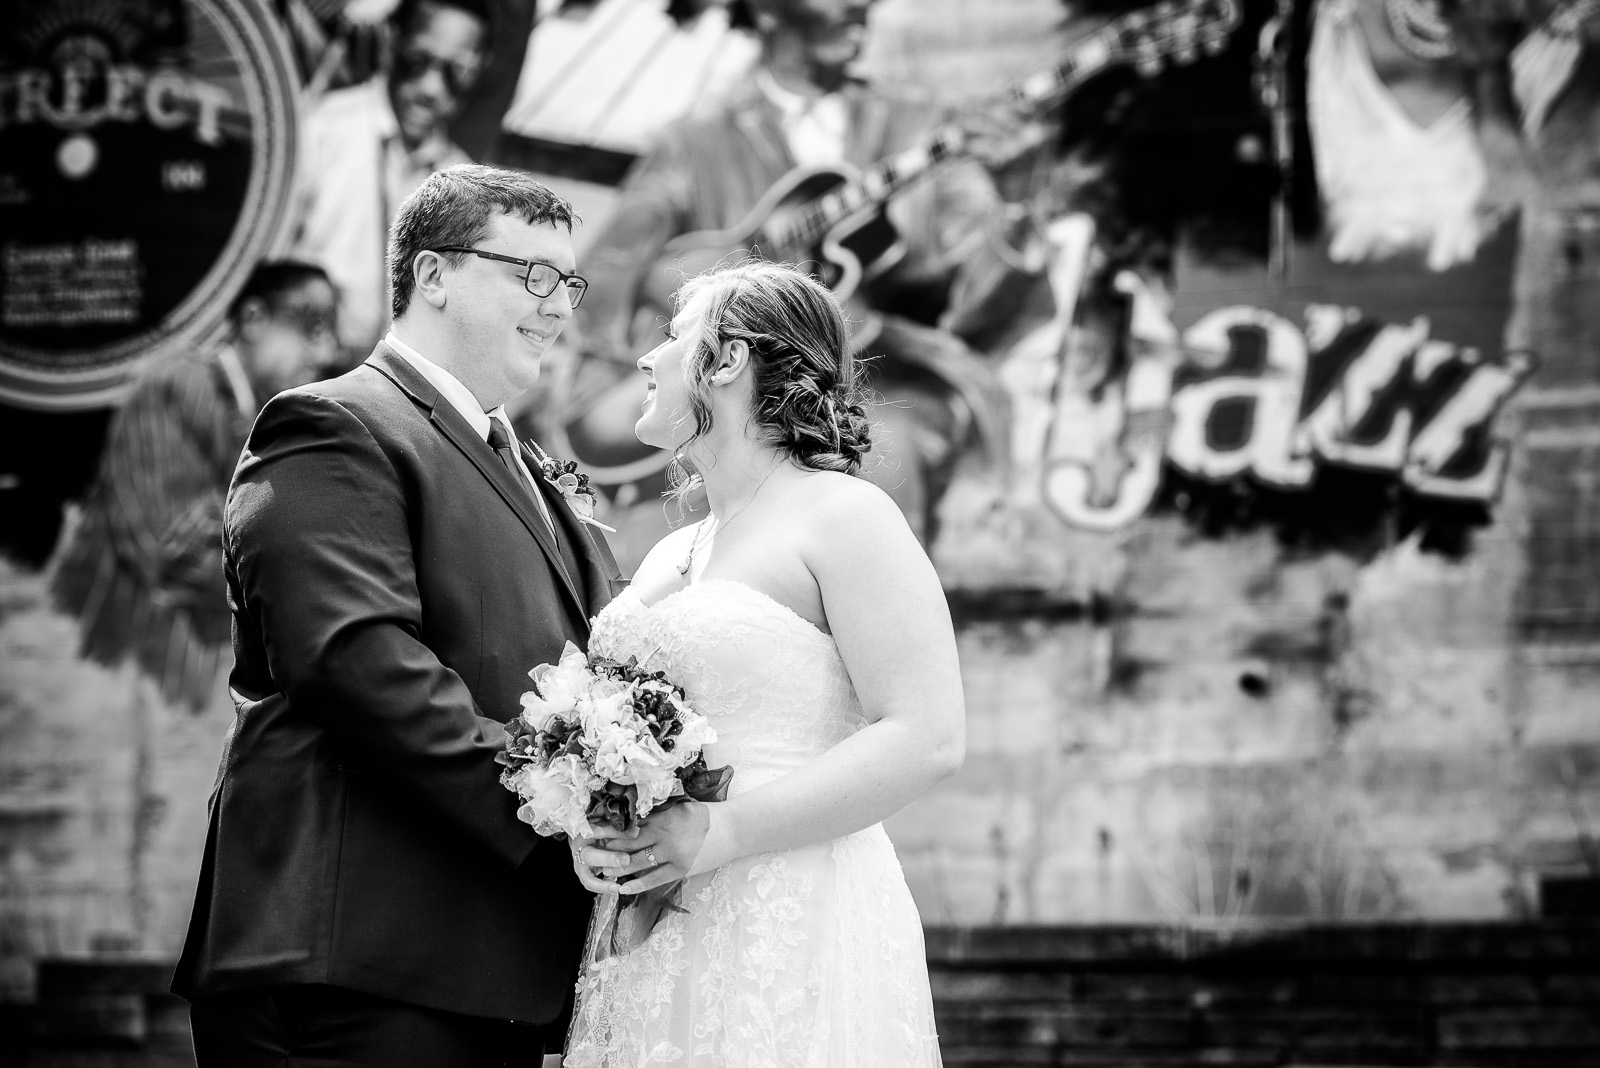 Eric_and_Christy_Photography_Blog_Wedding_Karen_Nick-20